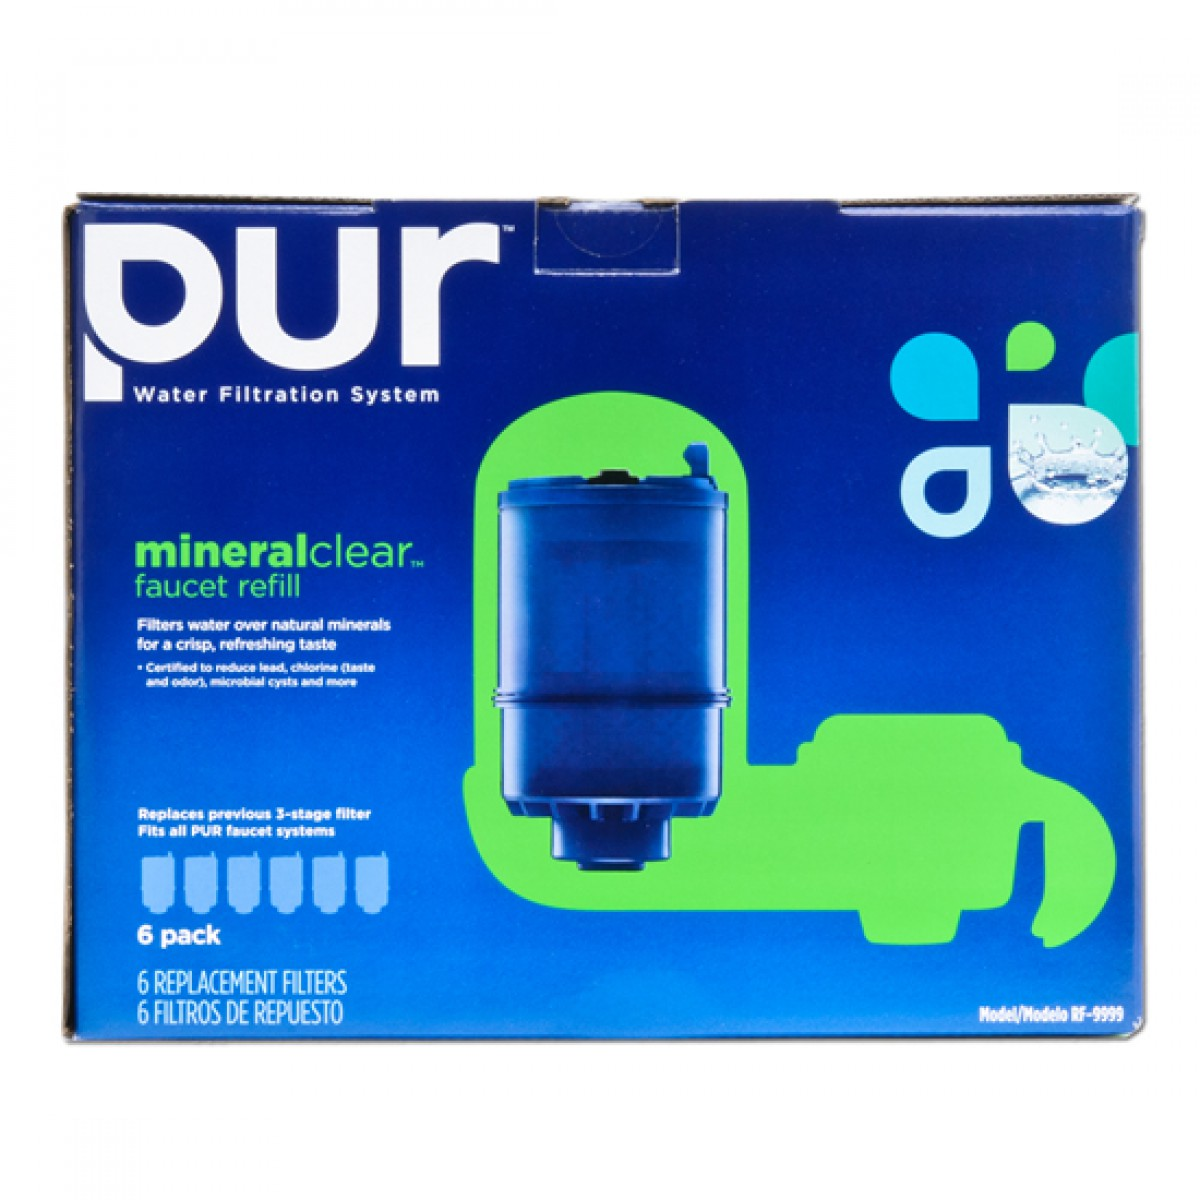 PUR RF-9999-6 3-Stage Mineral Clear Faucet Filter Replacement 6-Pack